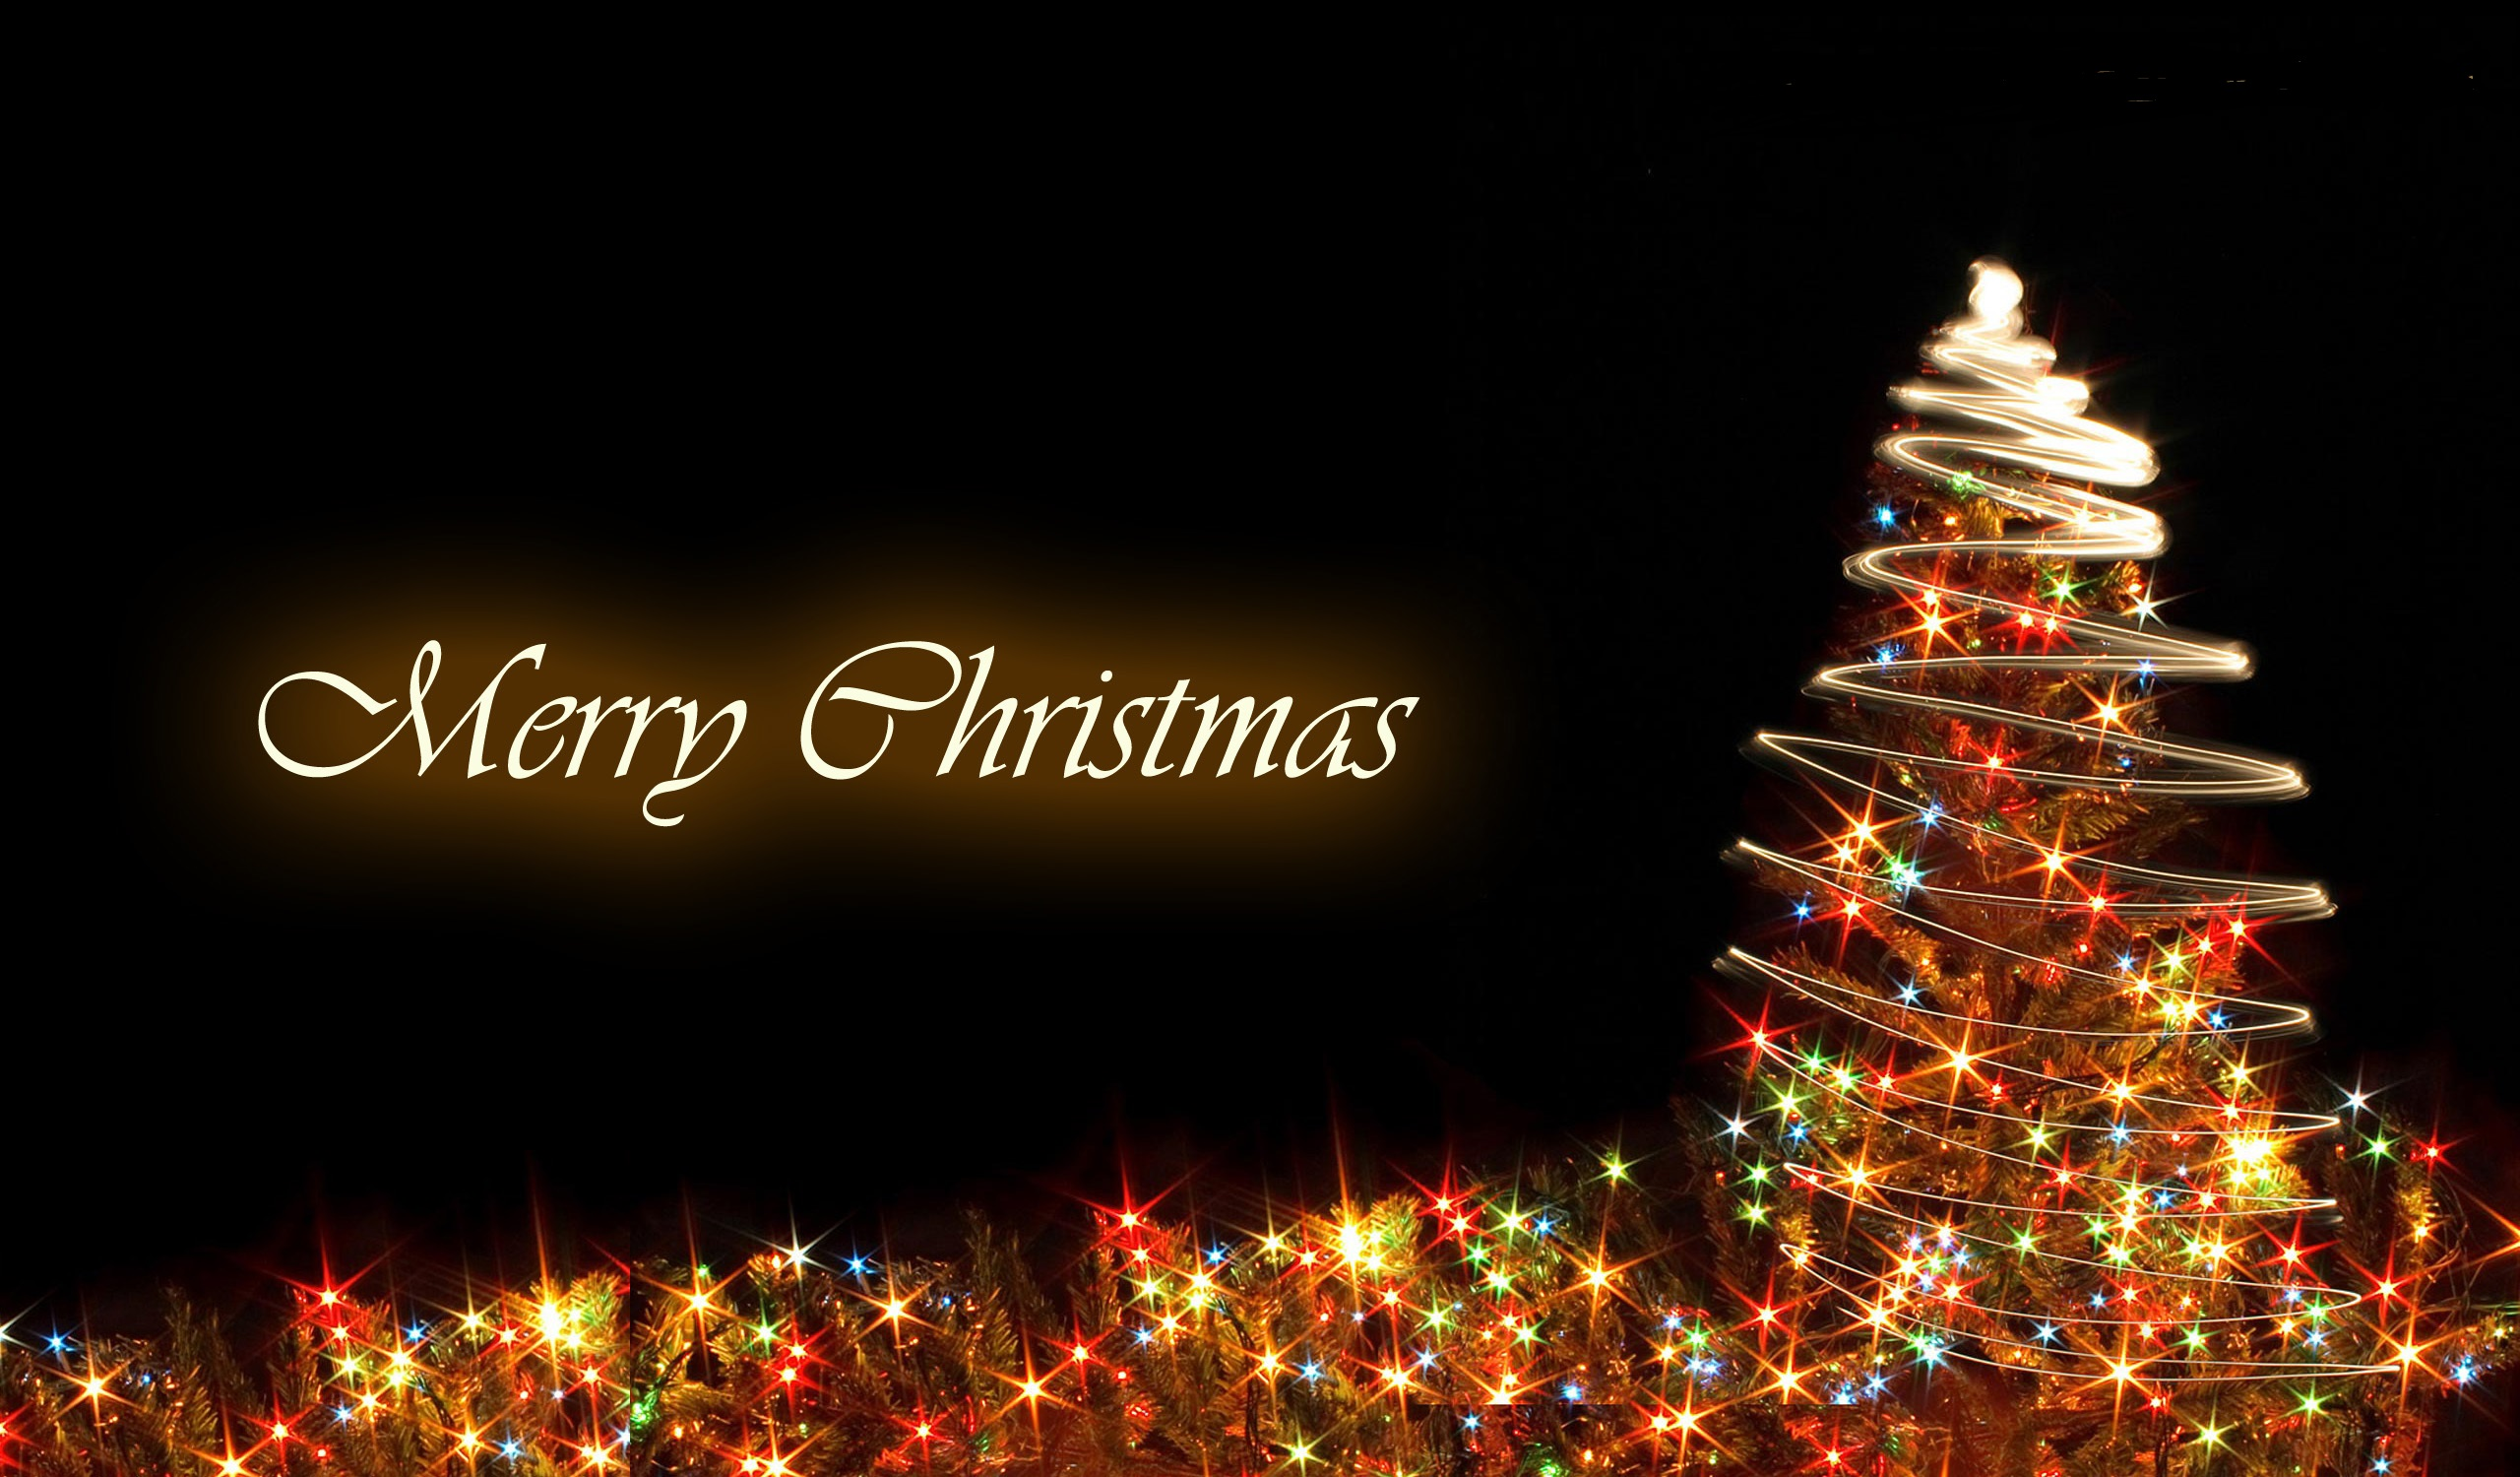 merry christmas wallpapers hd free download | pixelstalk